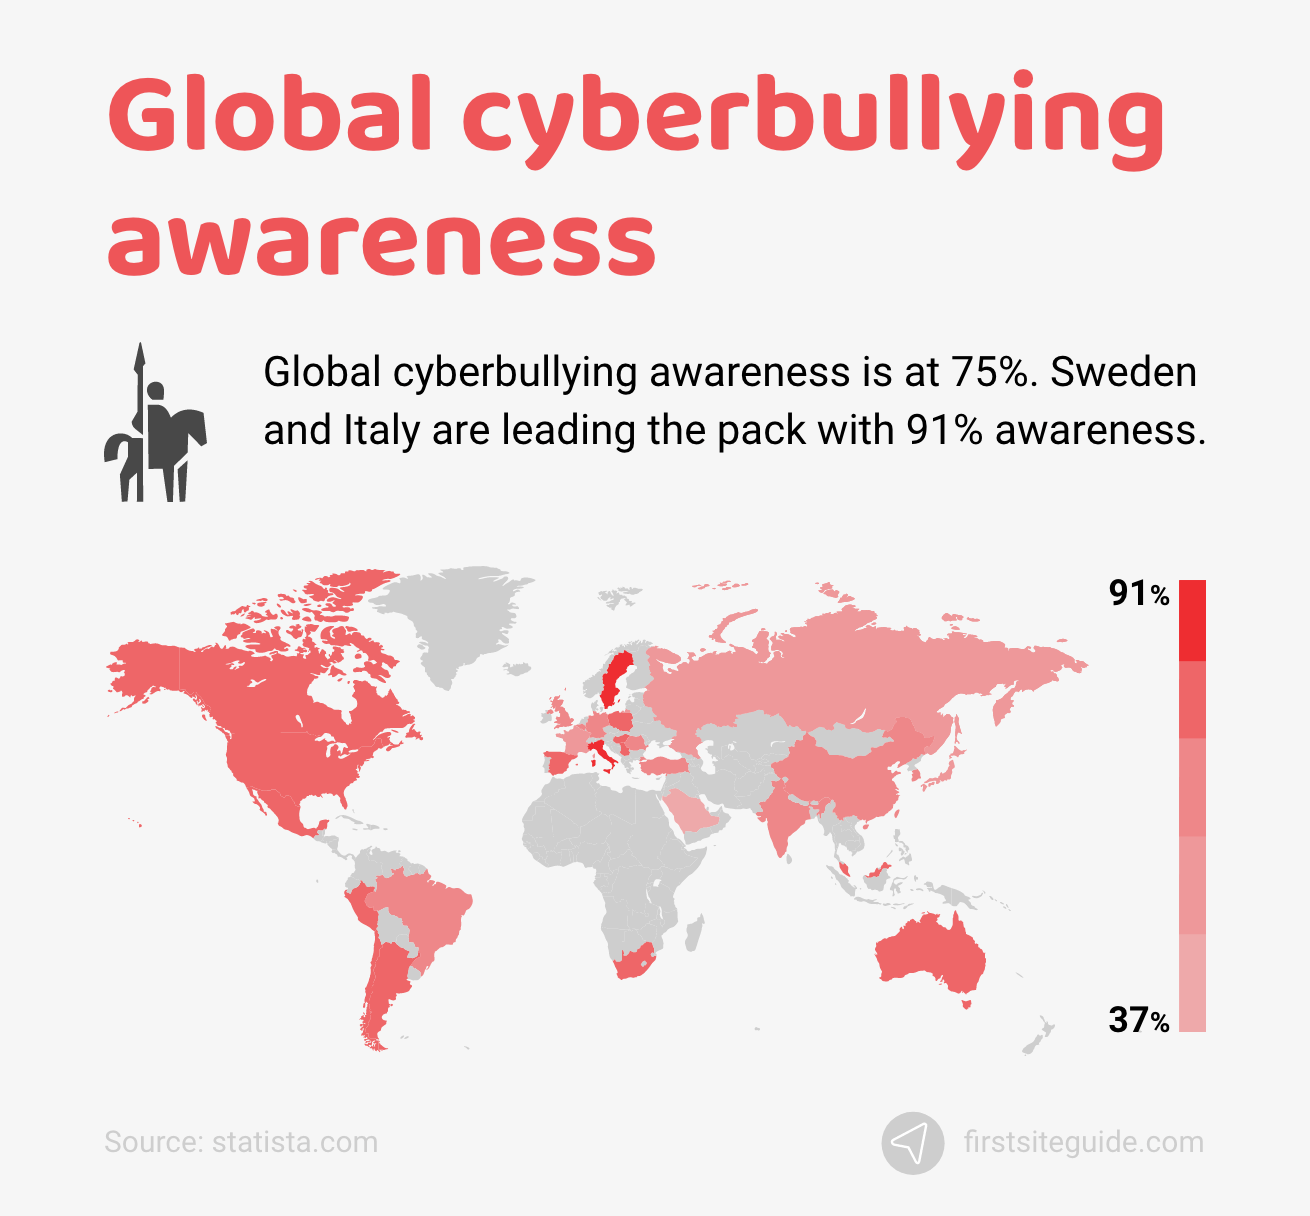 Global cyberbullying awareness